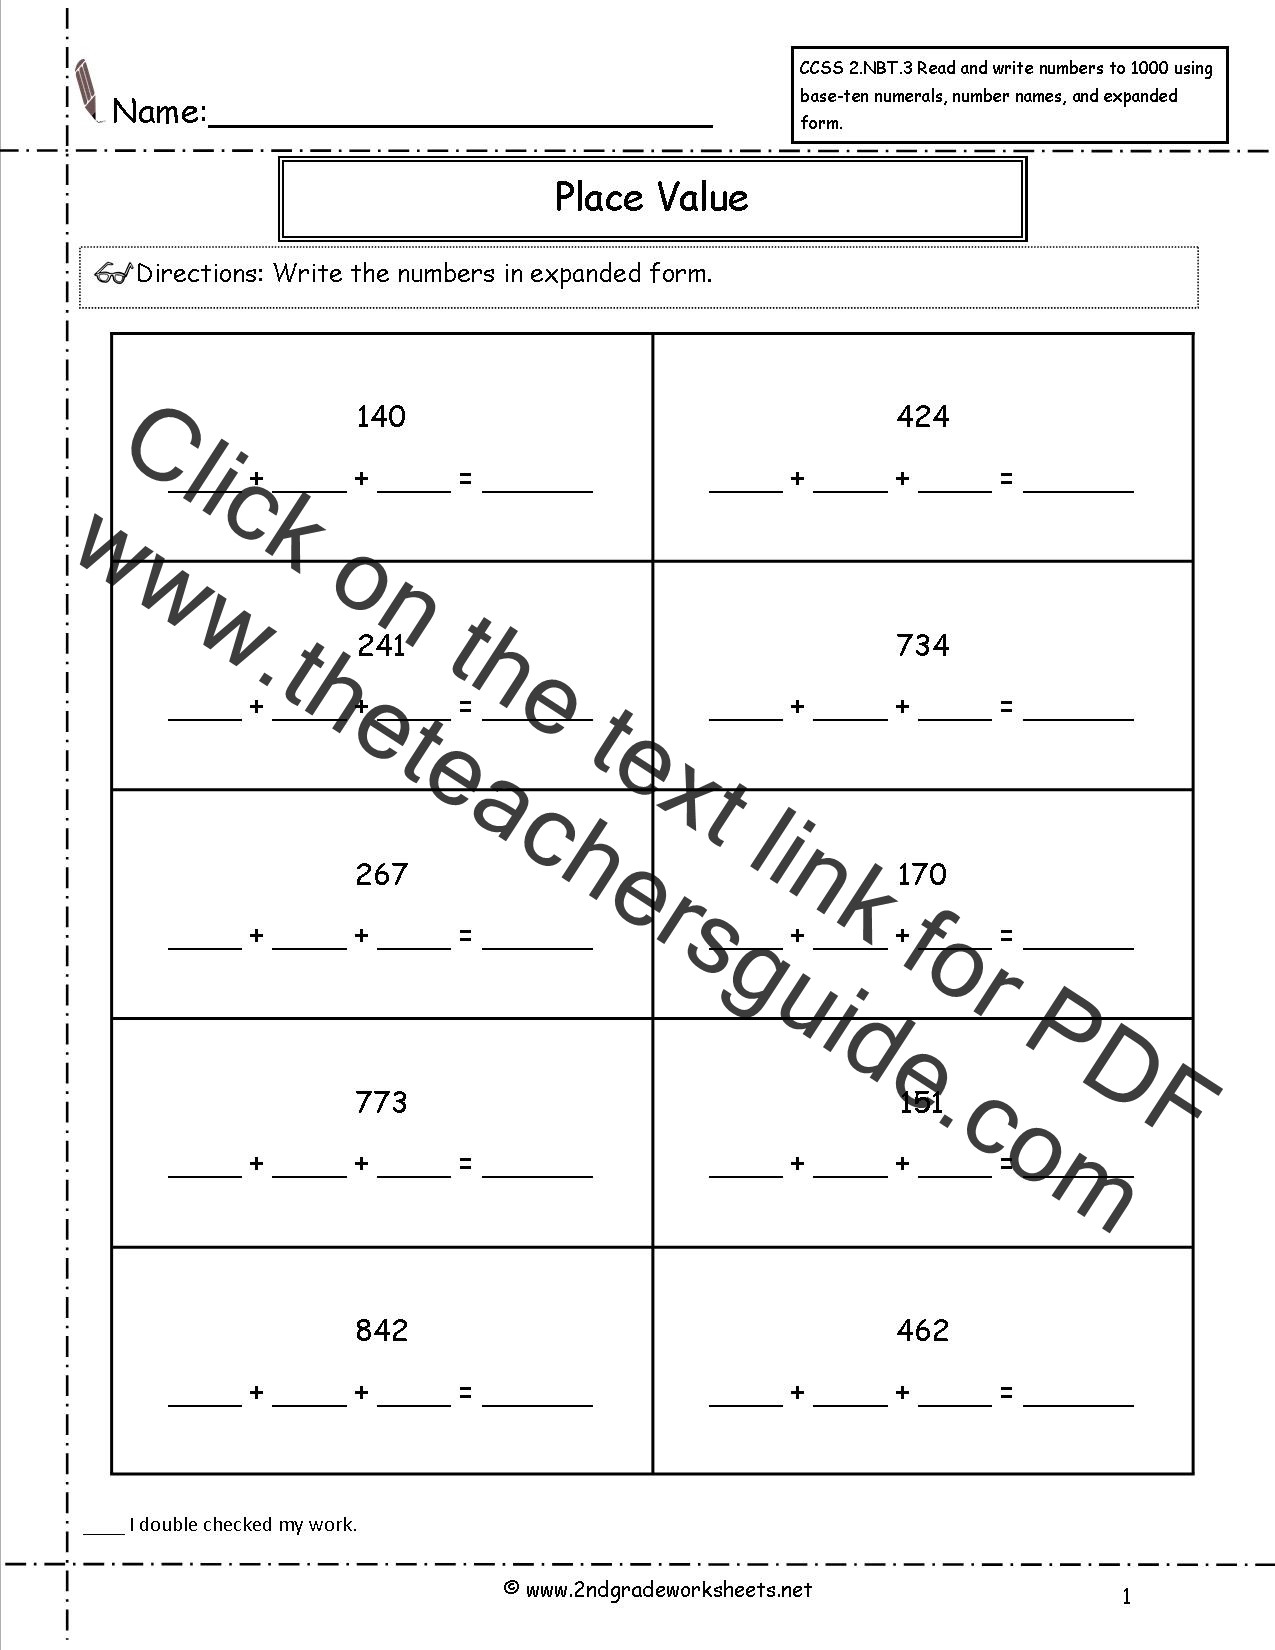 Expanded form Worksheets 3rd Grade 2nd Grade Math Expanded form Worksheets